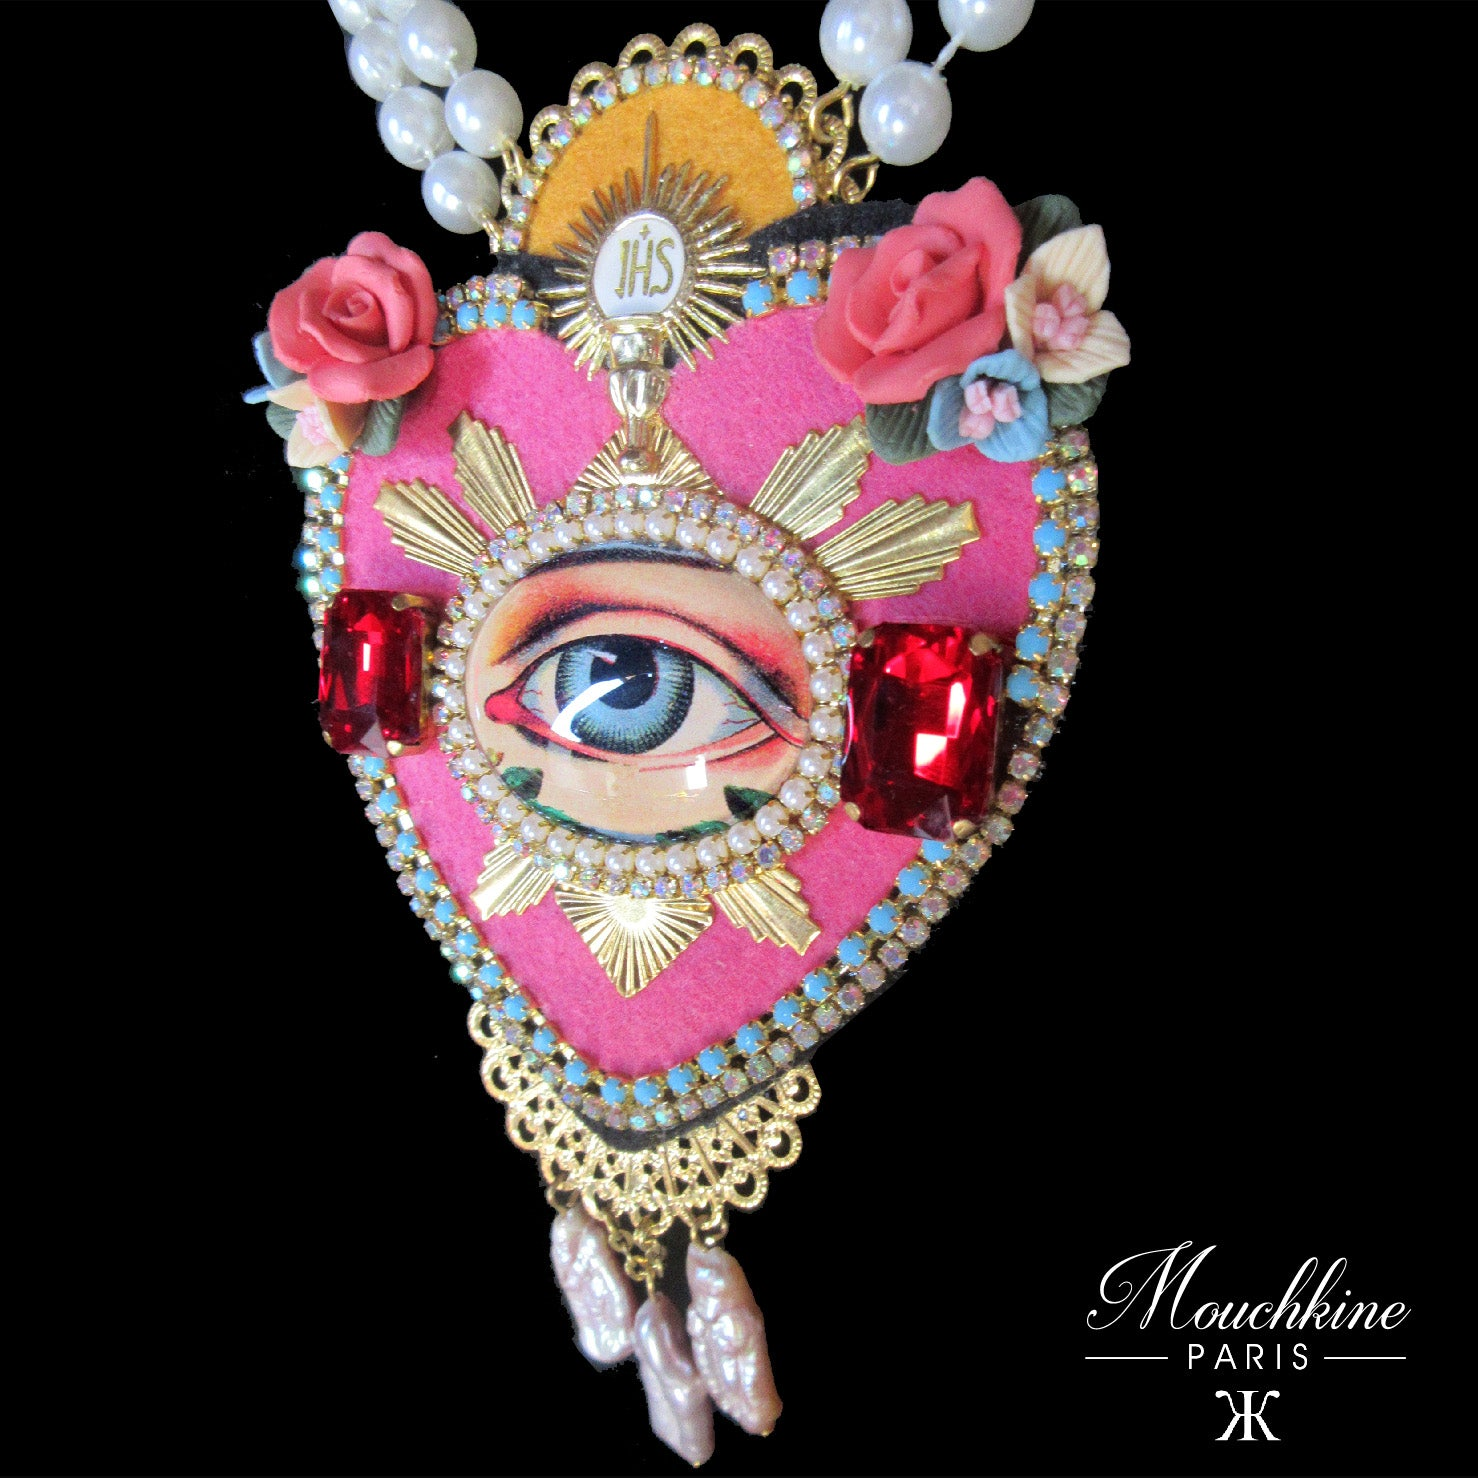 mouchkine jewelry luxury handmade necklace. a pink heart with an antique eye and real pearls.